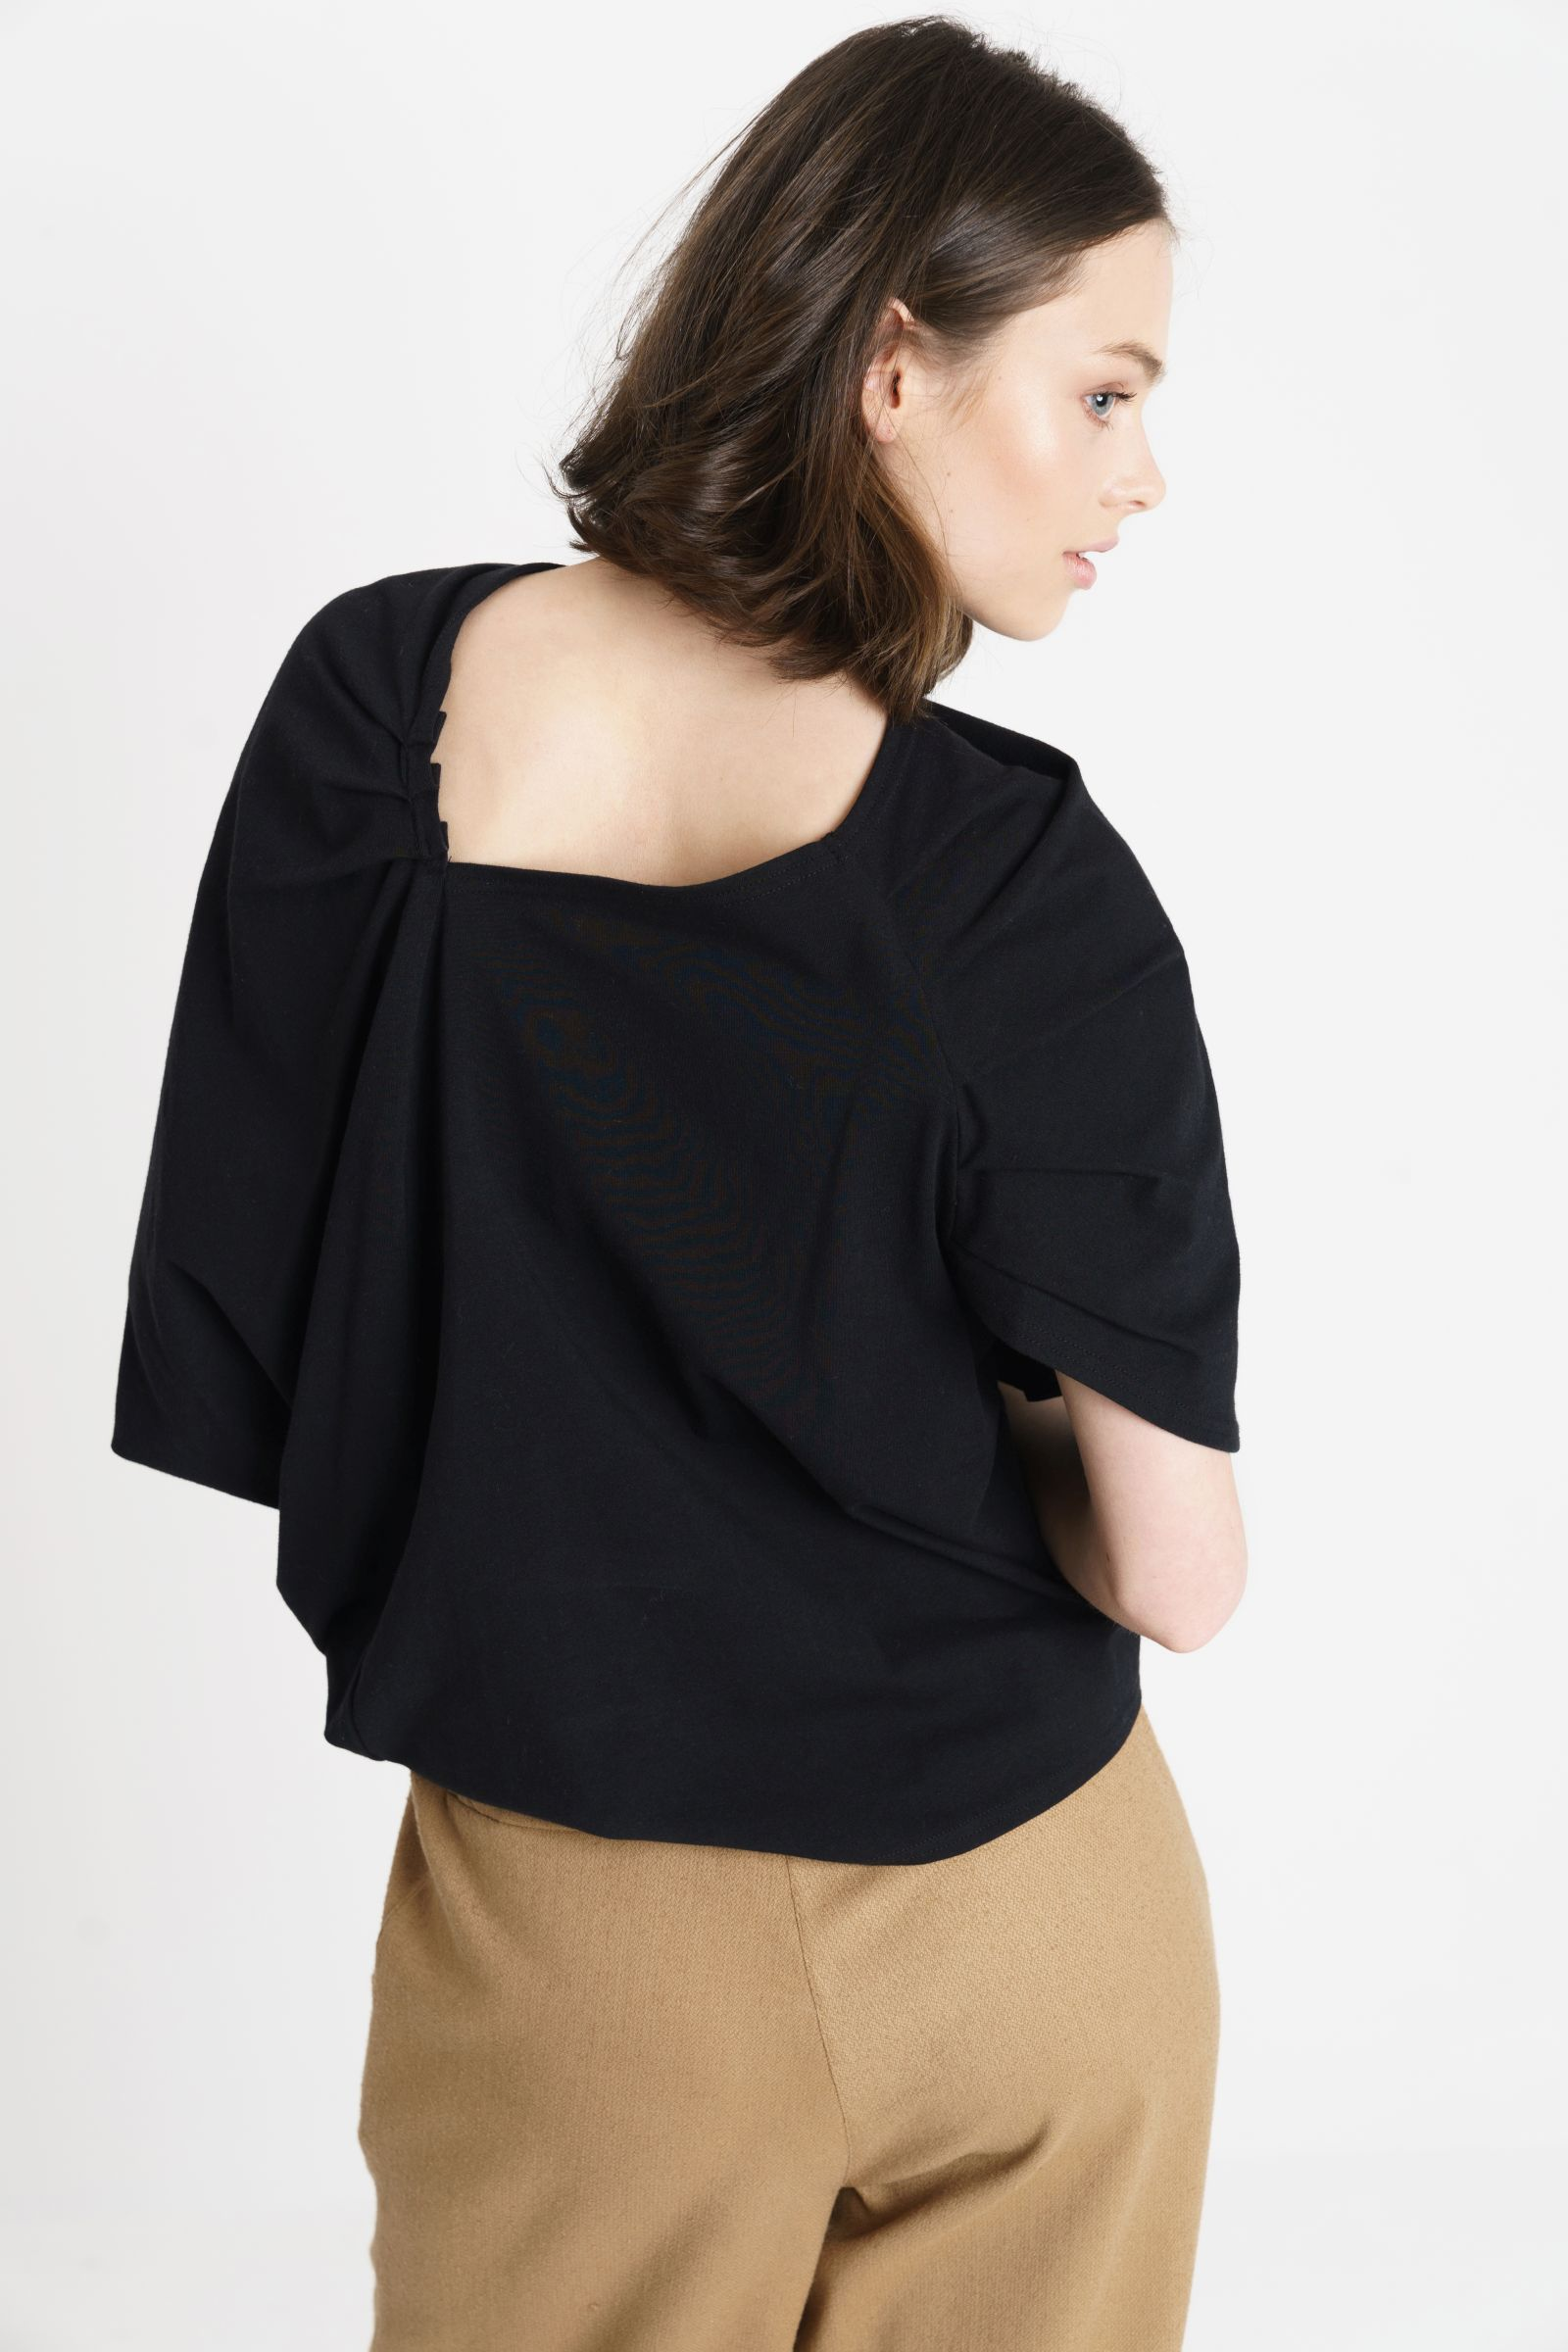 1-fairtrade-bluse-susan-draped-blouse-SS18-1-blacklROeq39a2qXZP